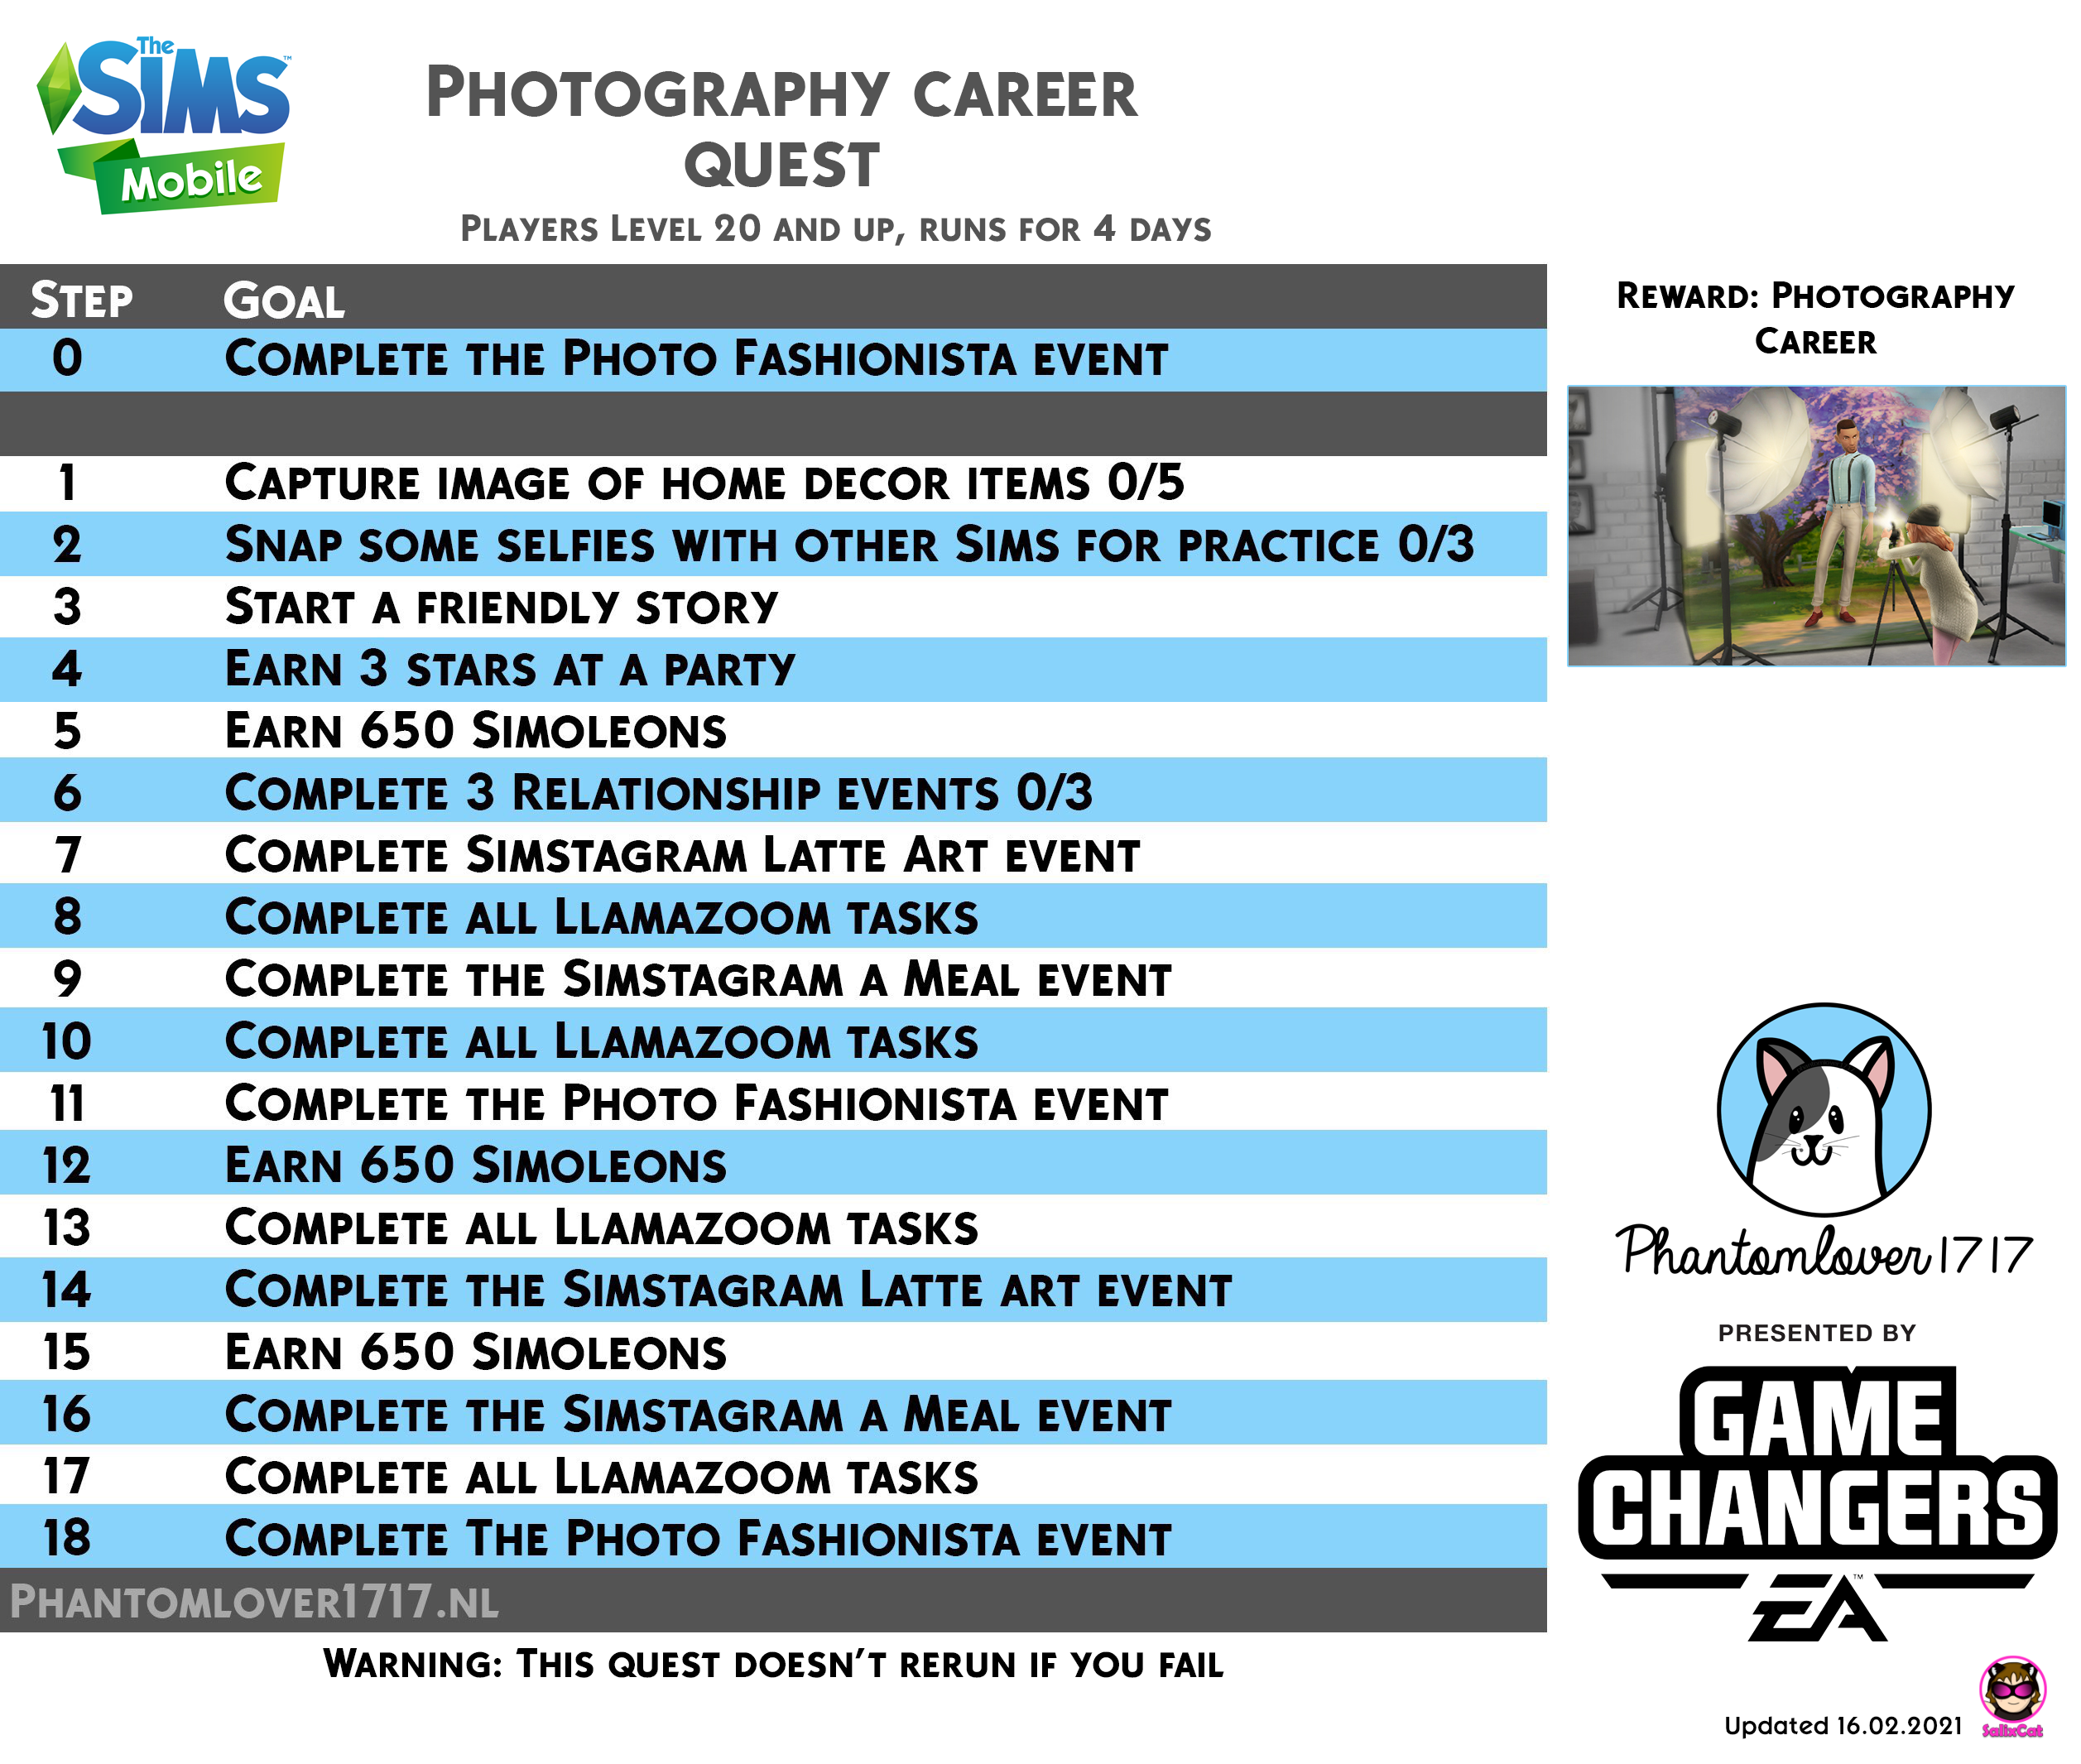 PhotographyQuestFebruary2021.png